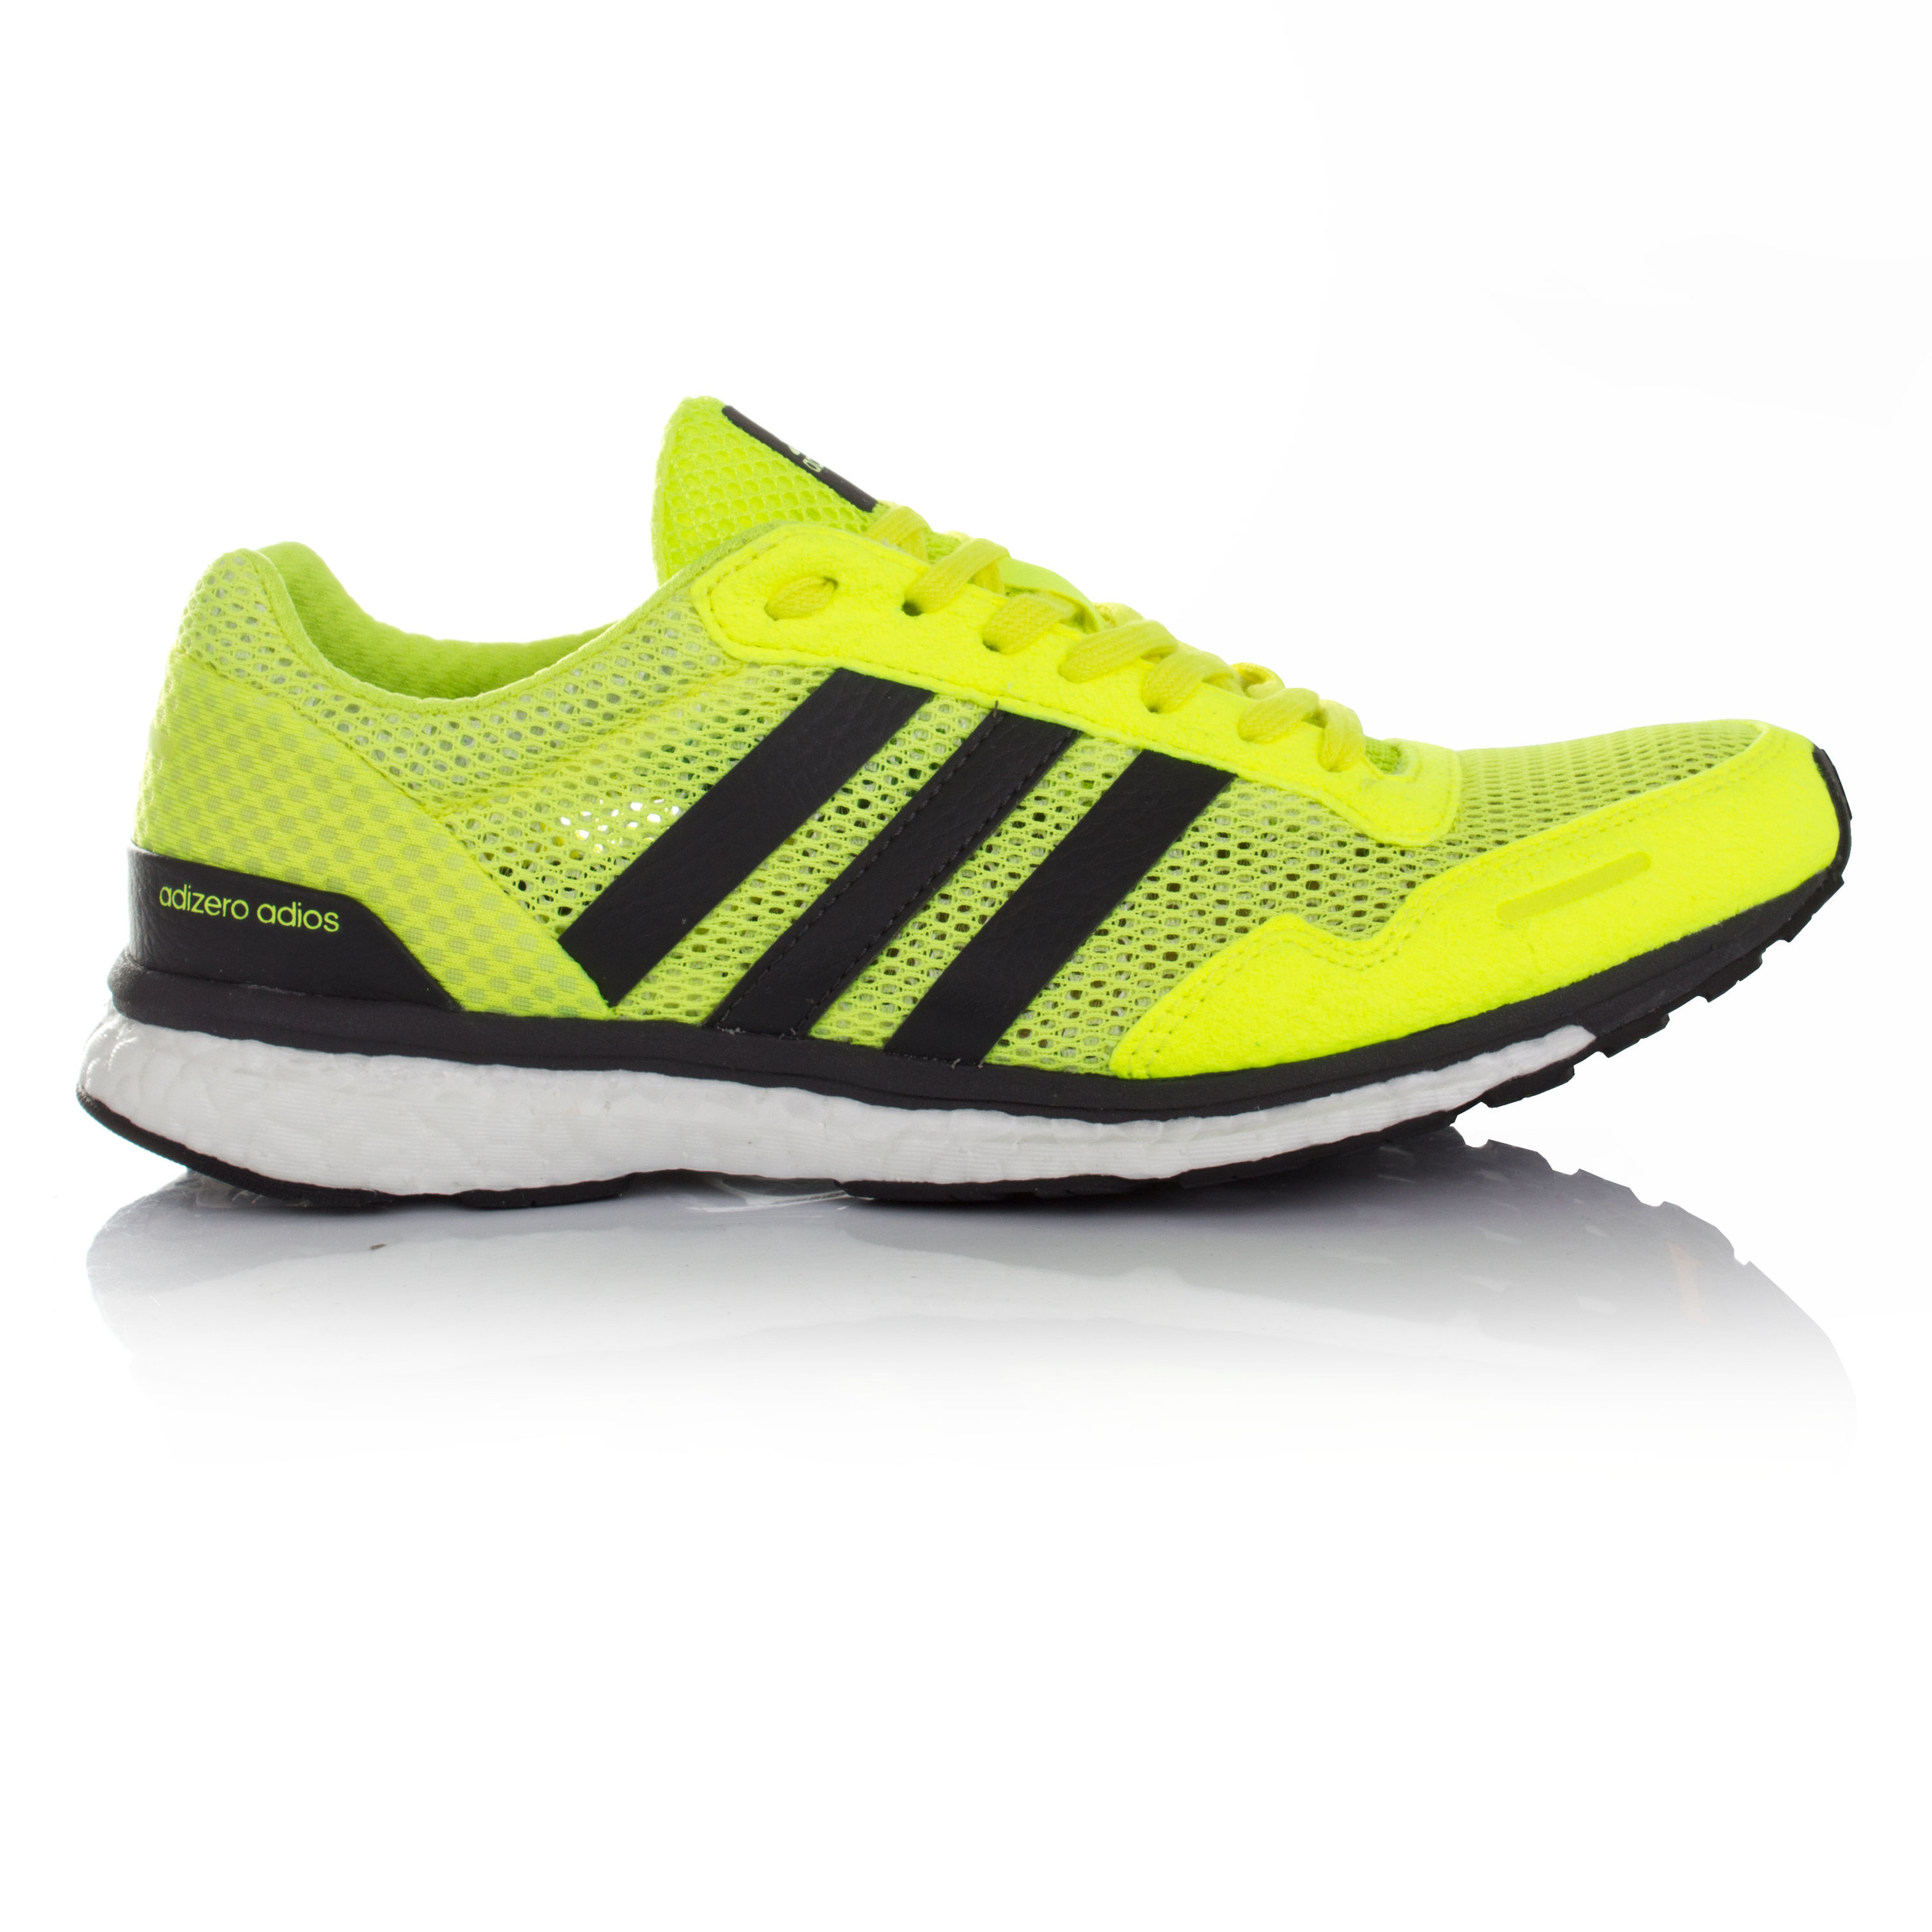 adidas adizero adios running shoes